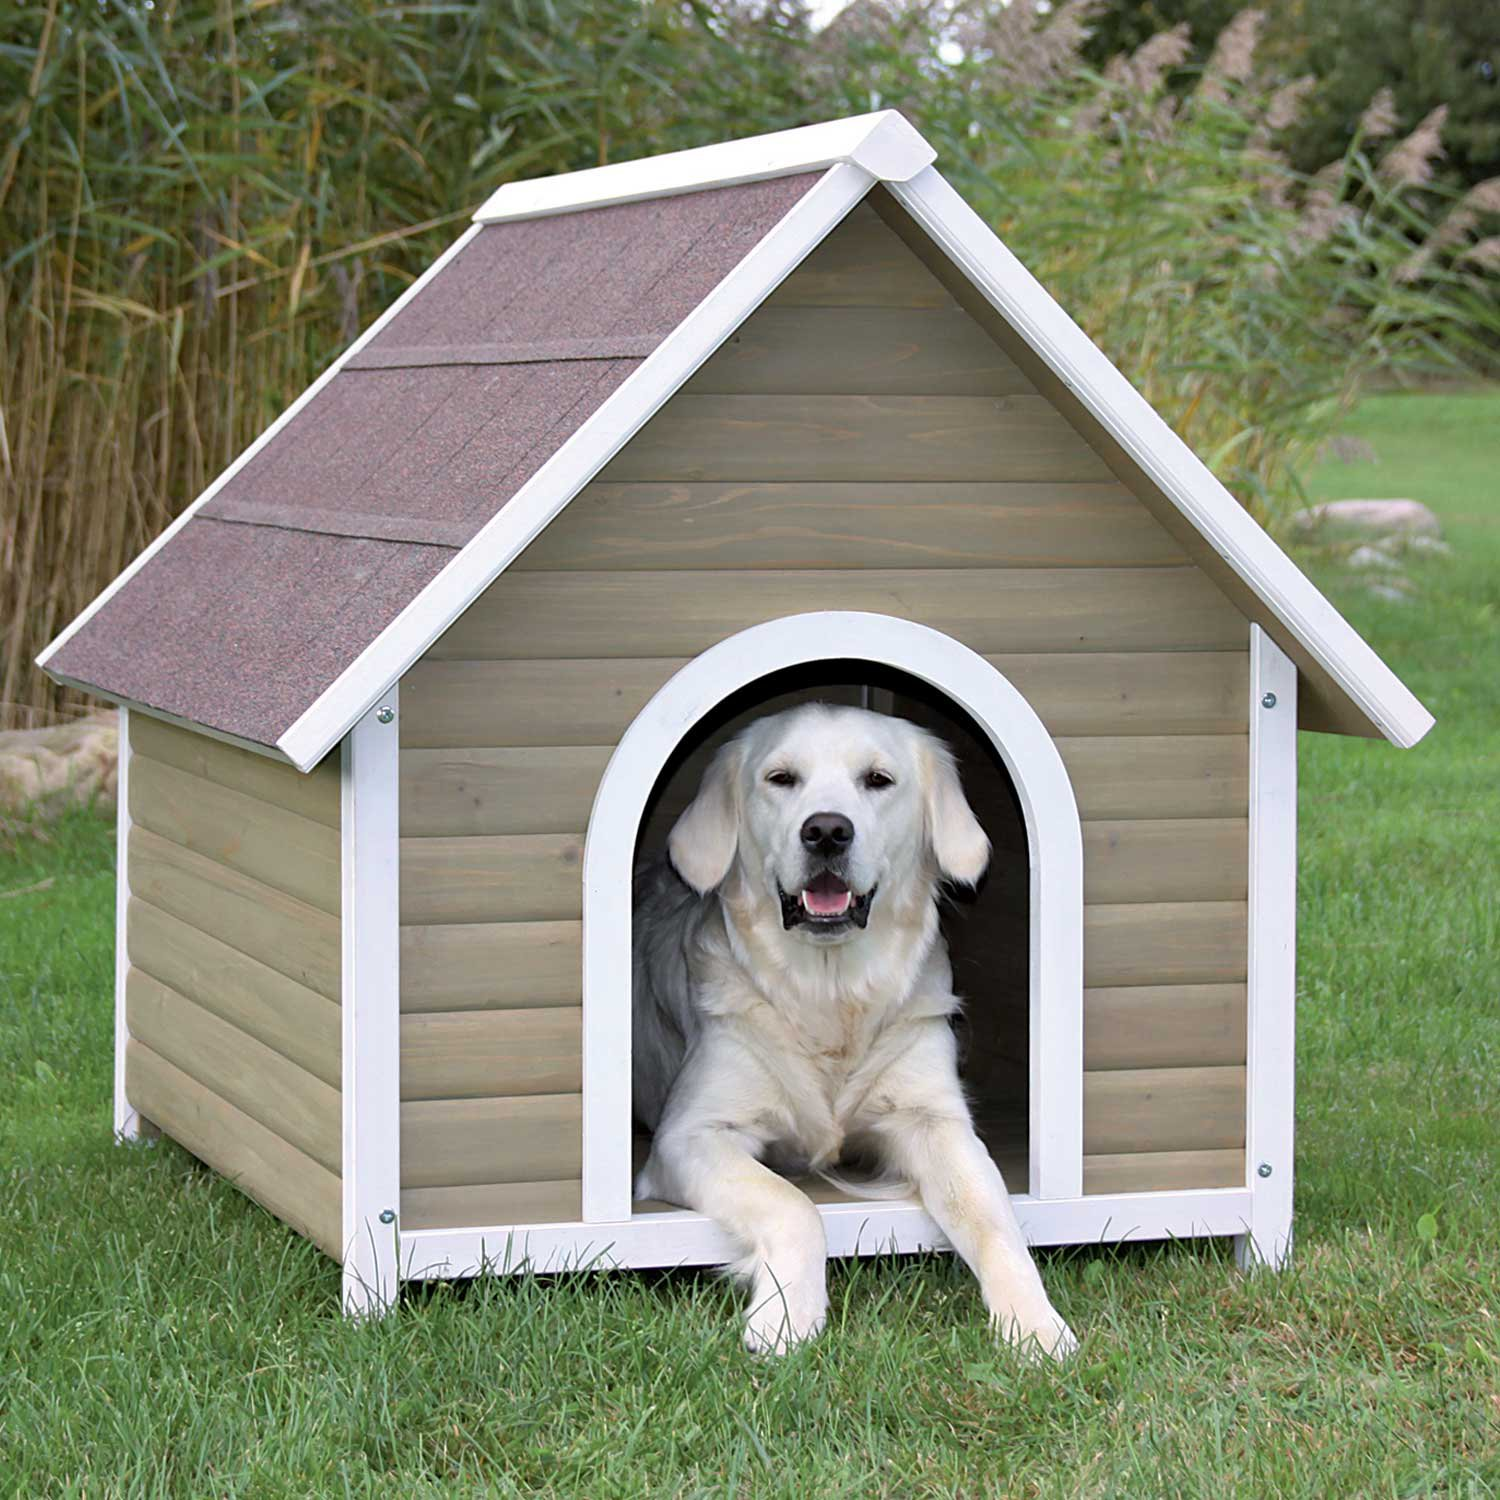 20 free dog house diy plans and ideas for building a dog kennel with pictures - Dog Kennel Design Ideas